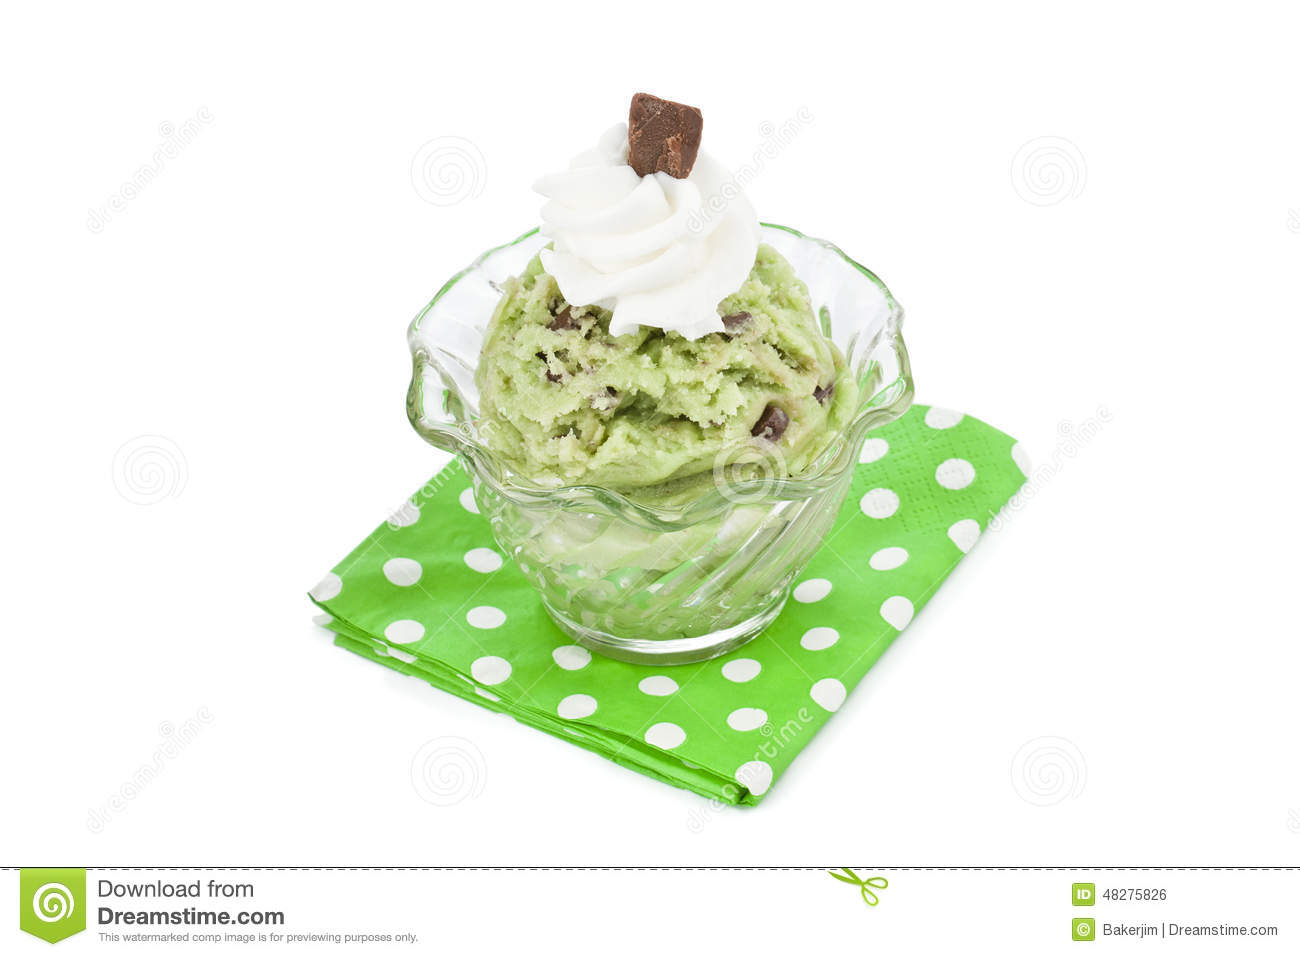 Mint Ice Cream Stock Photo - Image: 48275826